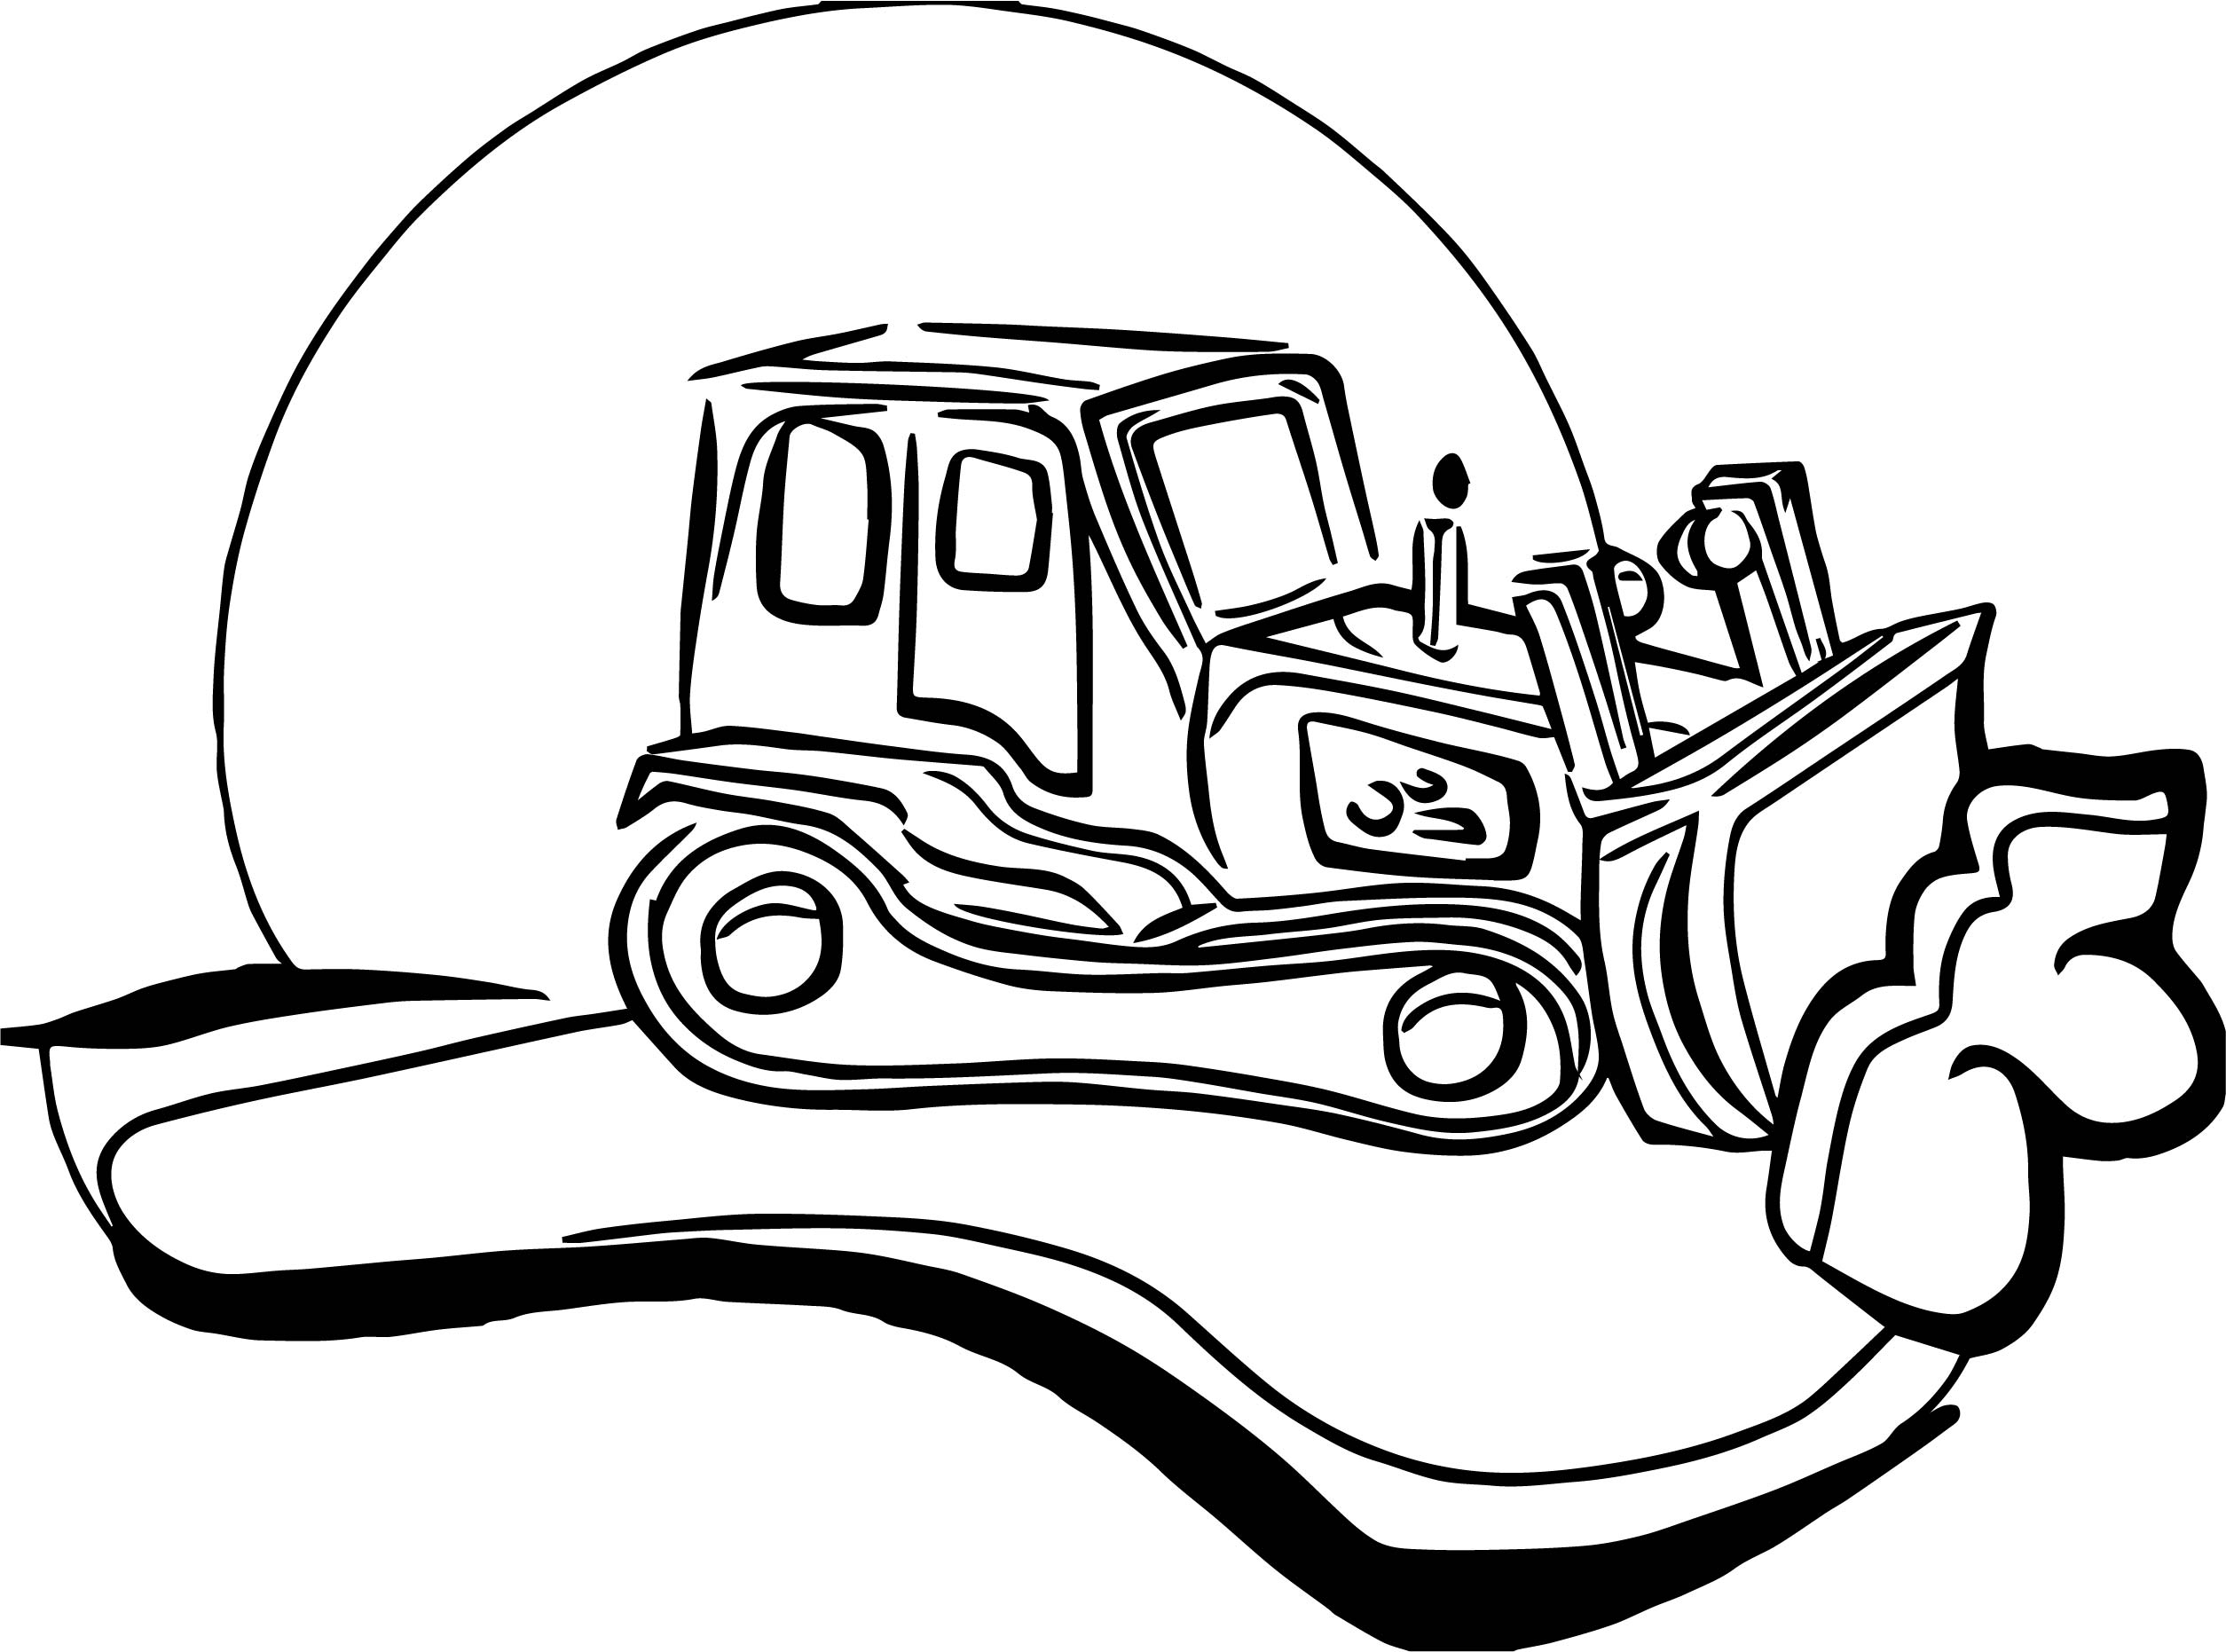 bulldozer coloring pages - bulldozer silhouette coloring page